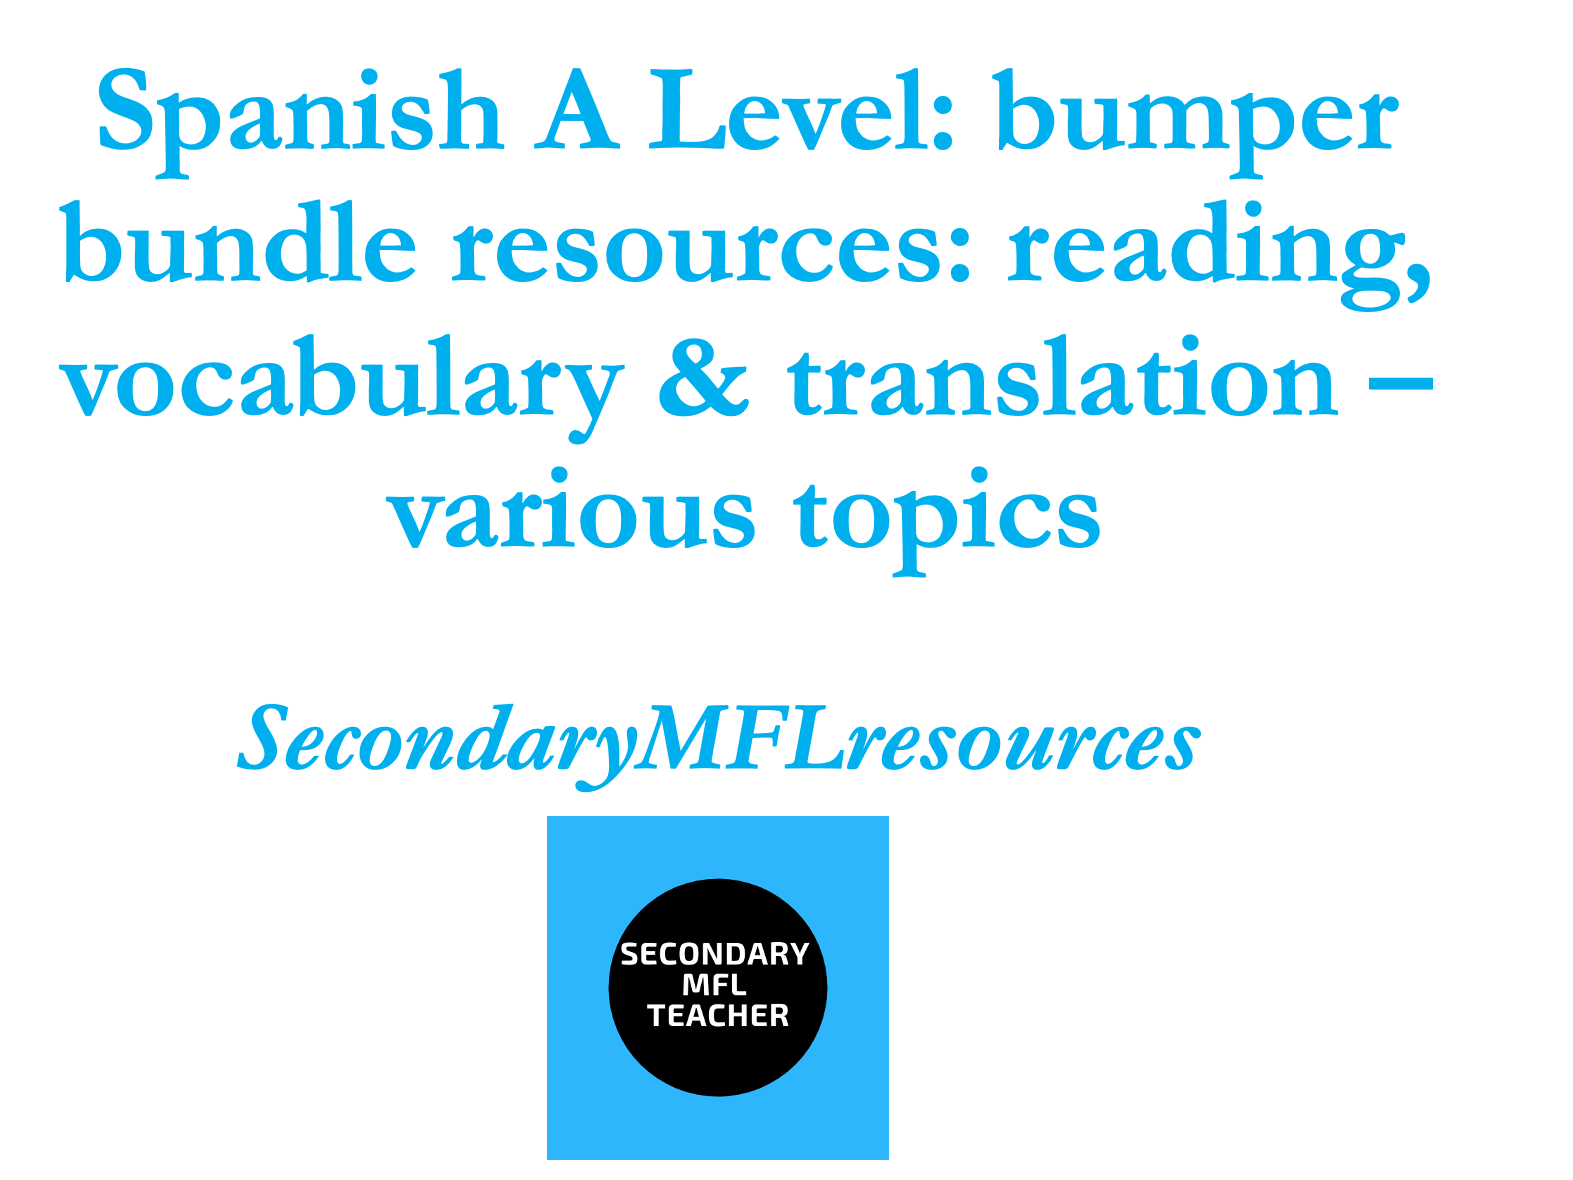 Bumper Spanish A Level Reading, Vocabulary, Translation and Grammar  Bundle (20 of my  A Level resource packs)